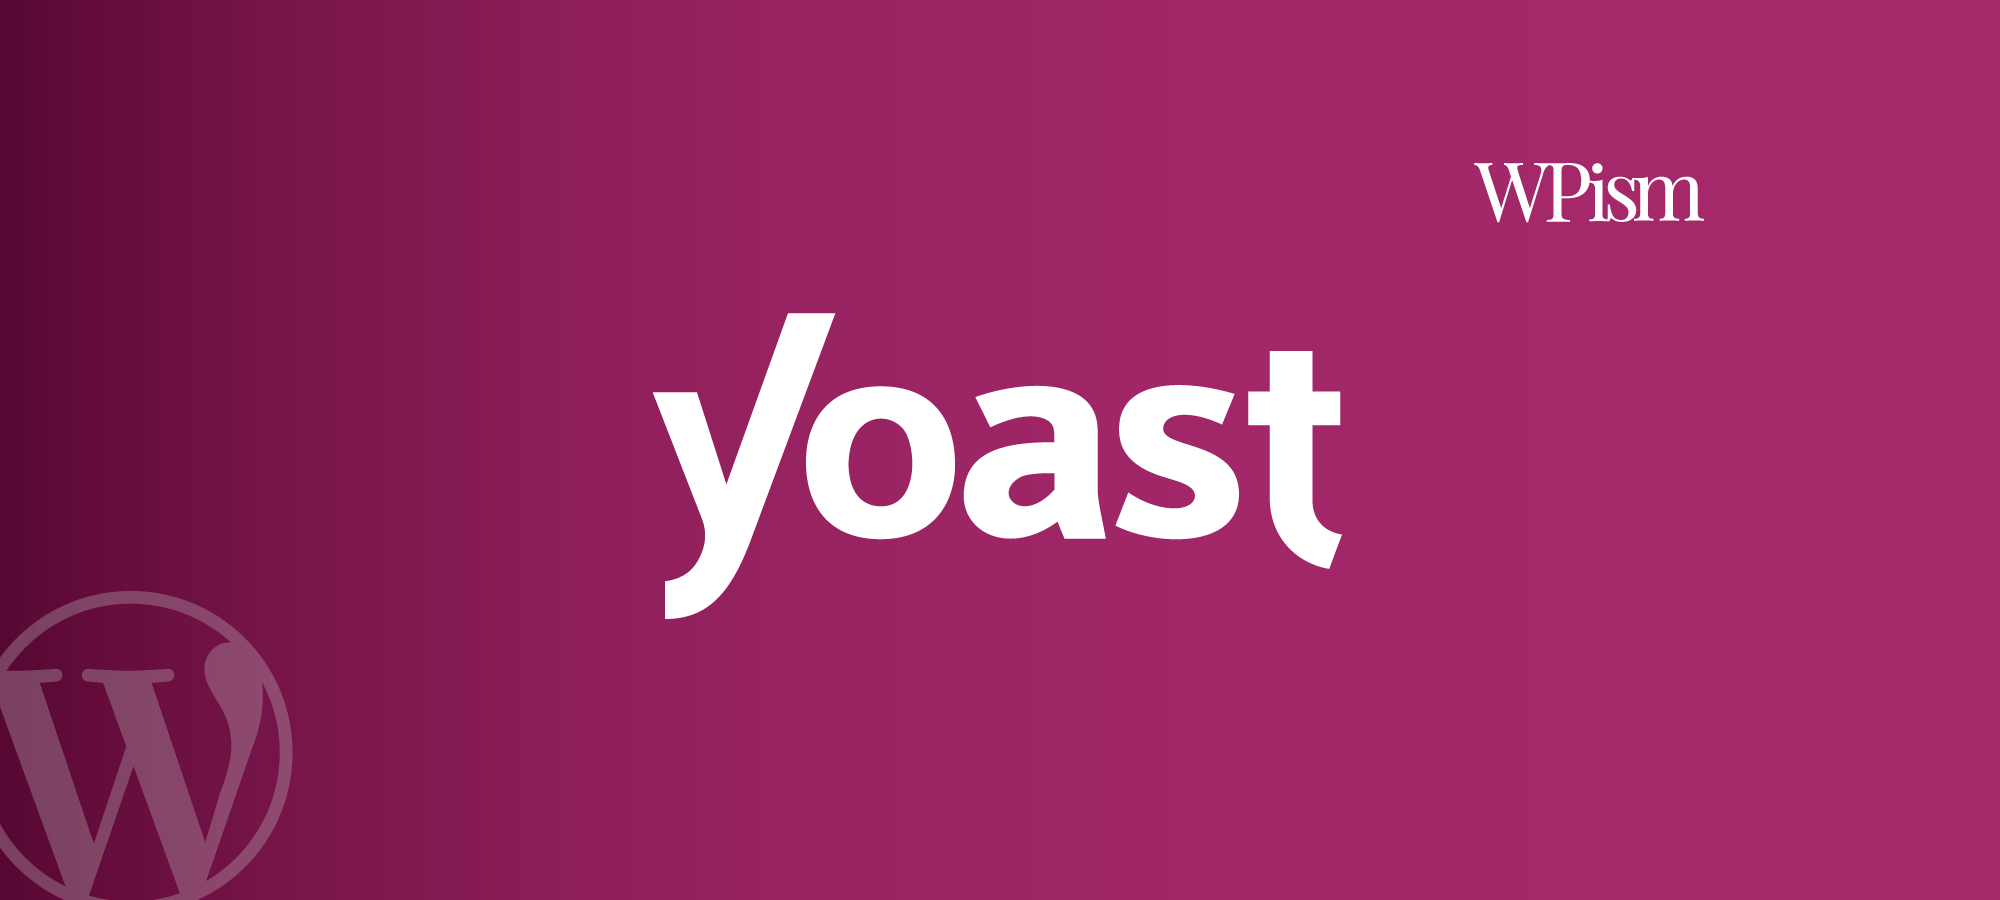 Yoast Plugin WPism Comments Manage